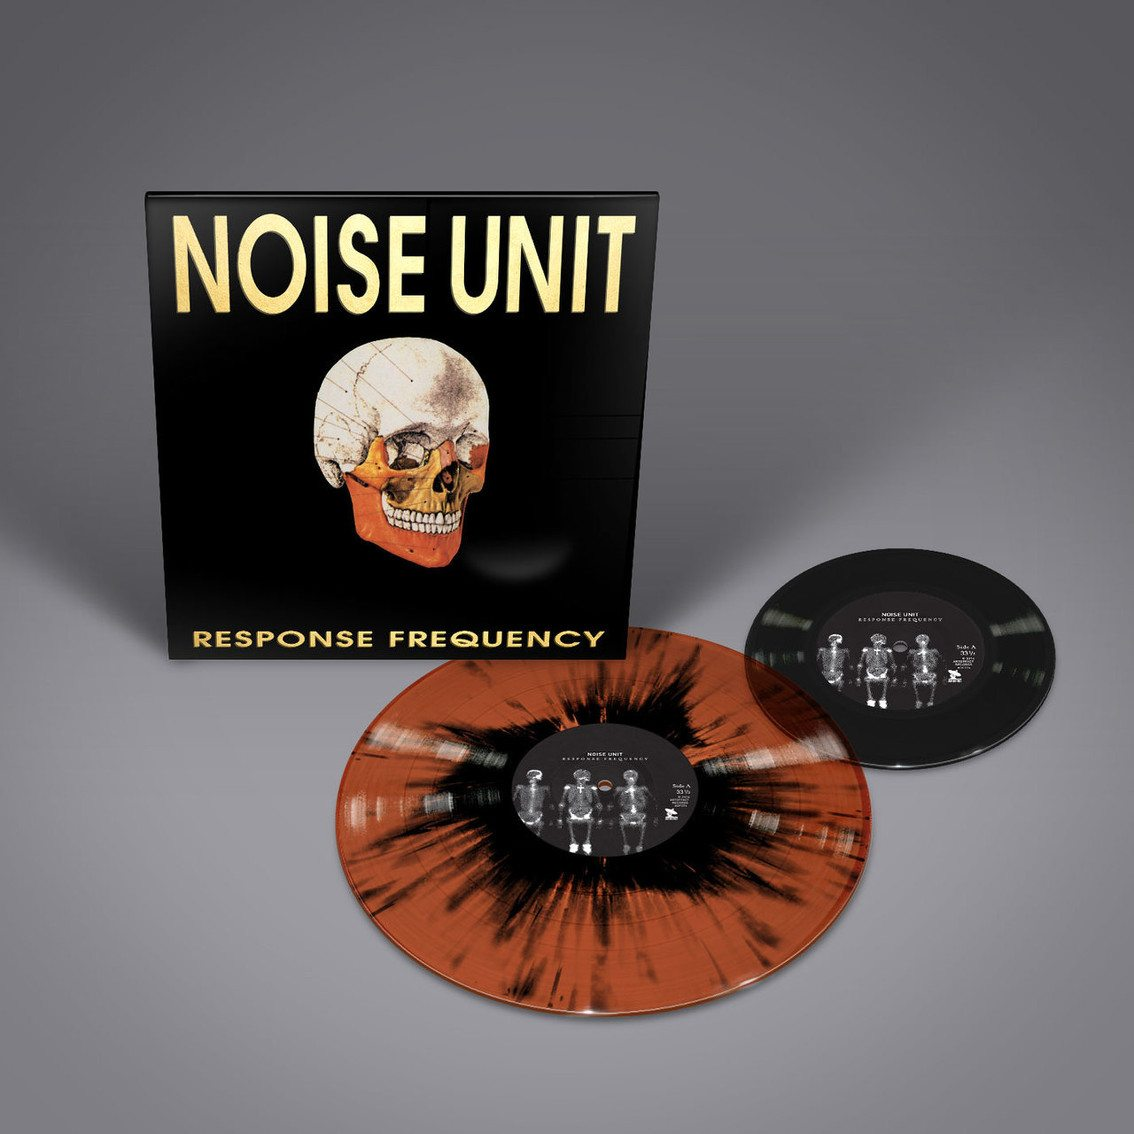 3 new Noise Unit to be re-released as deluxe vinyl sets - full order info